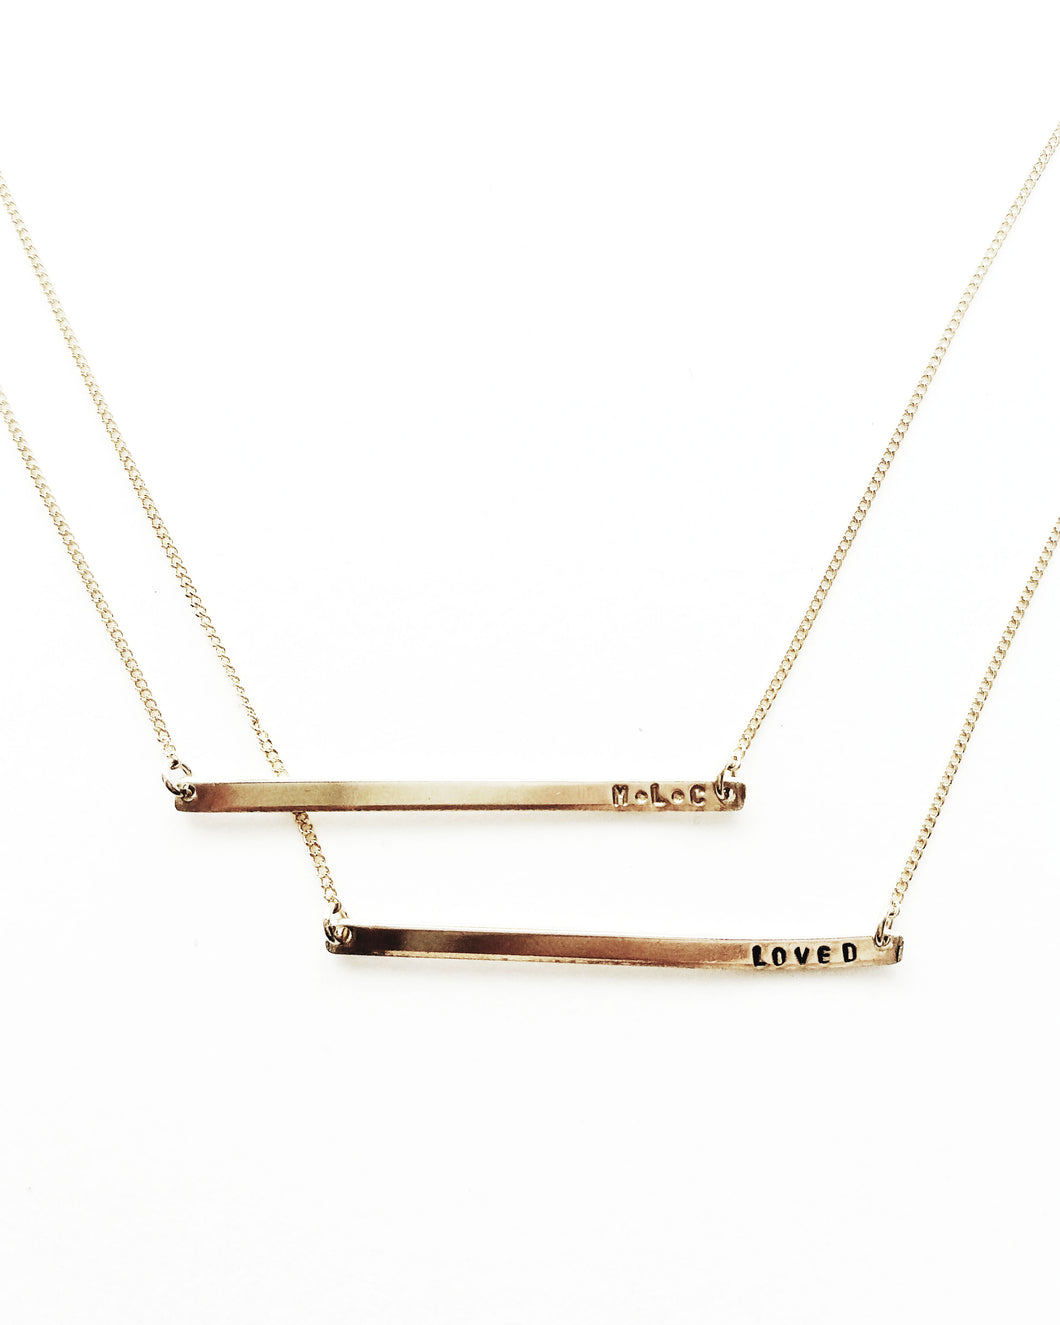 Personalized Handstamped Skinny Bar Necklace